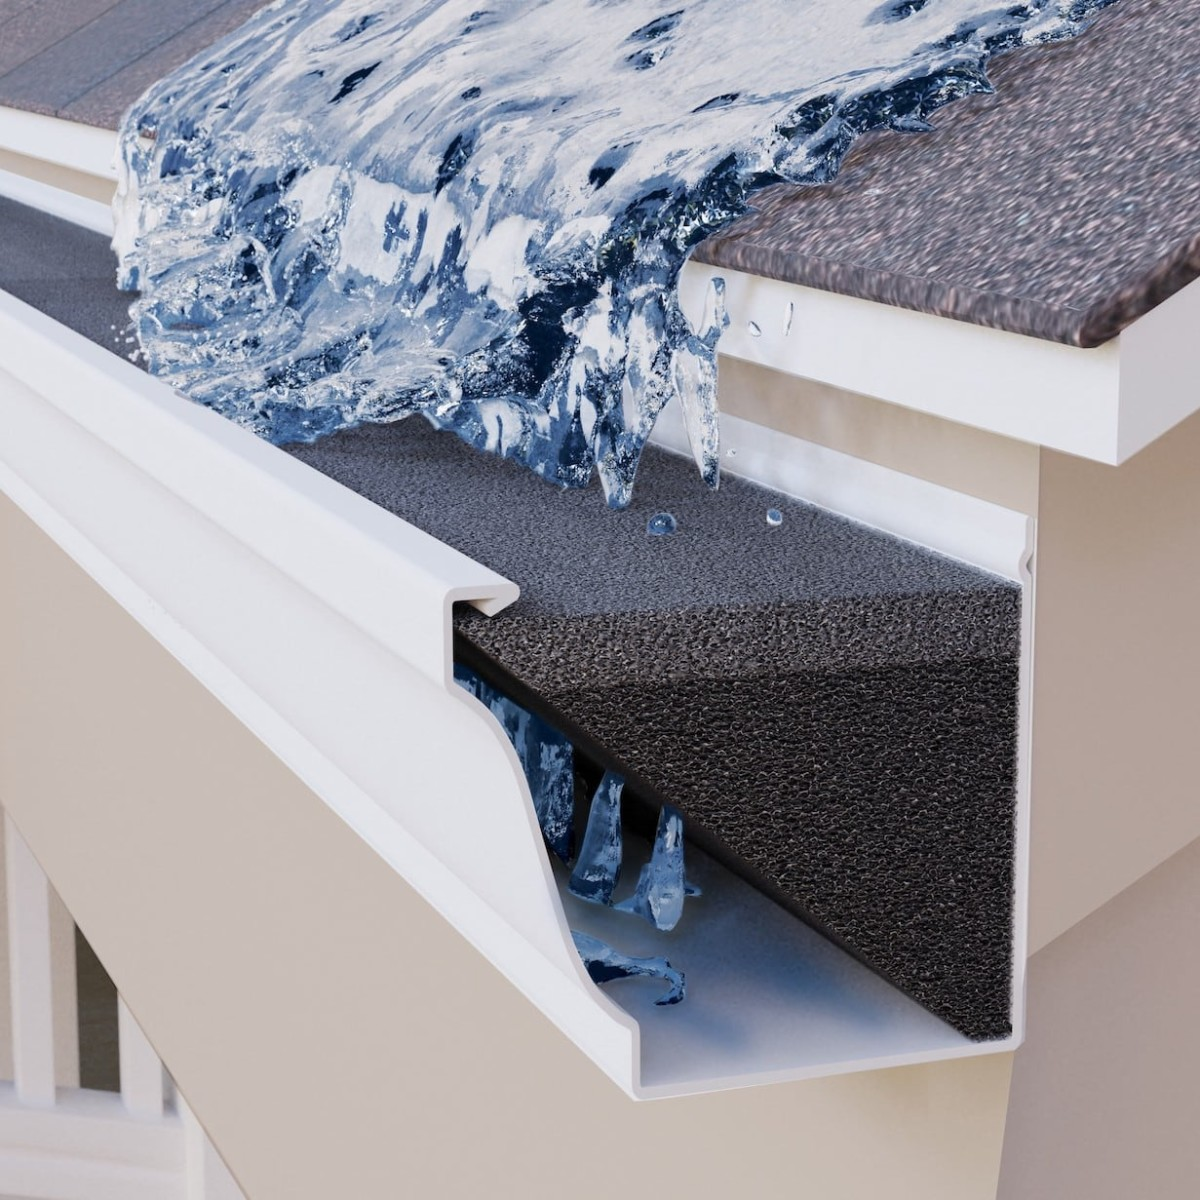 GutterStuff Self-Installed Gutter Guard keeps out leaves, snow, and debris all-year round